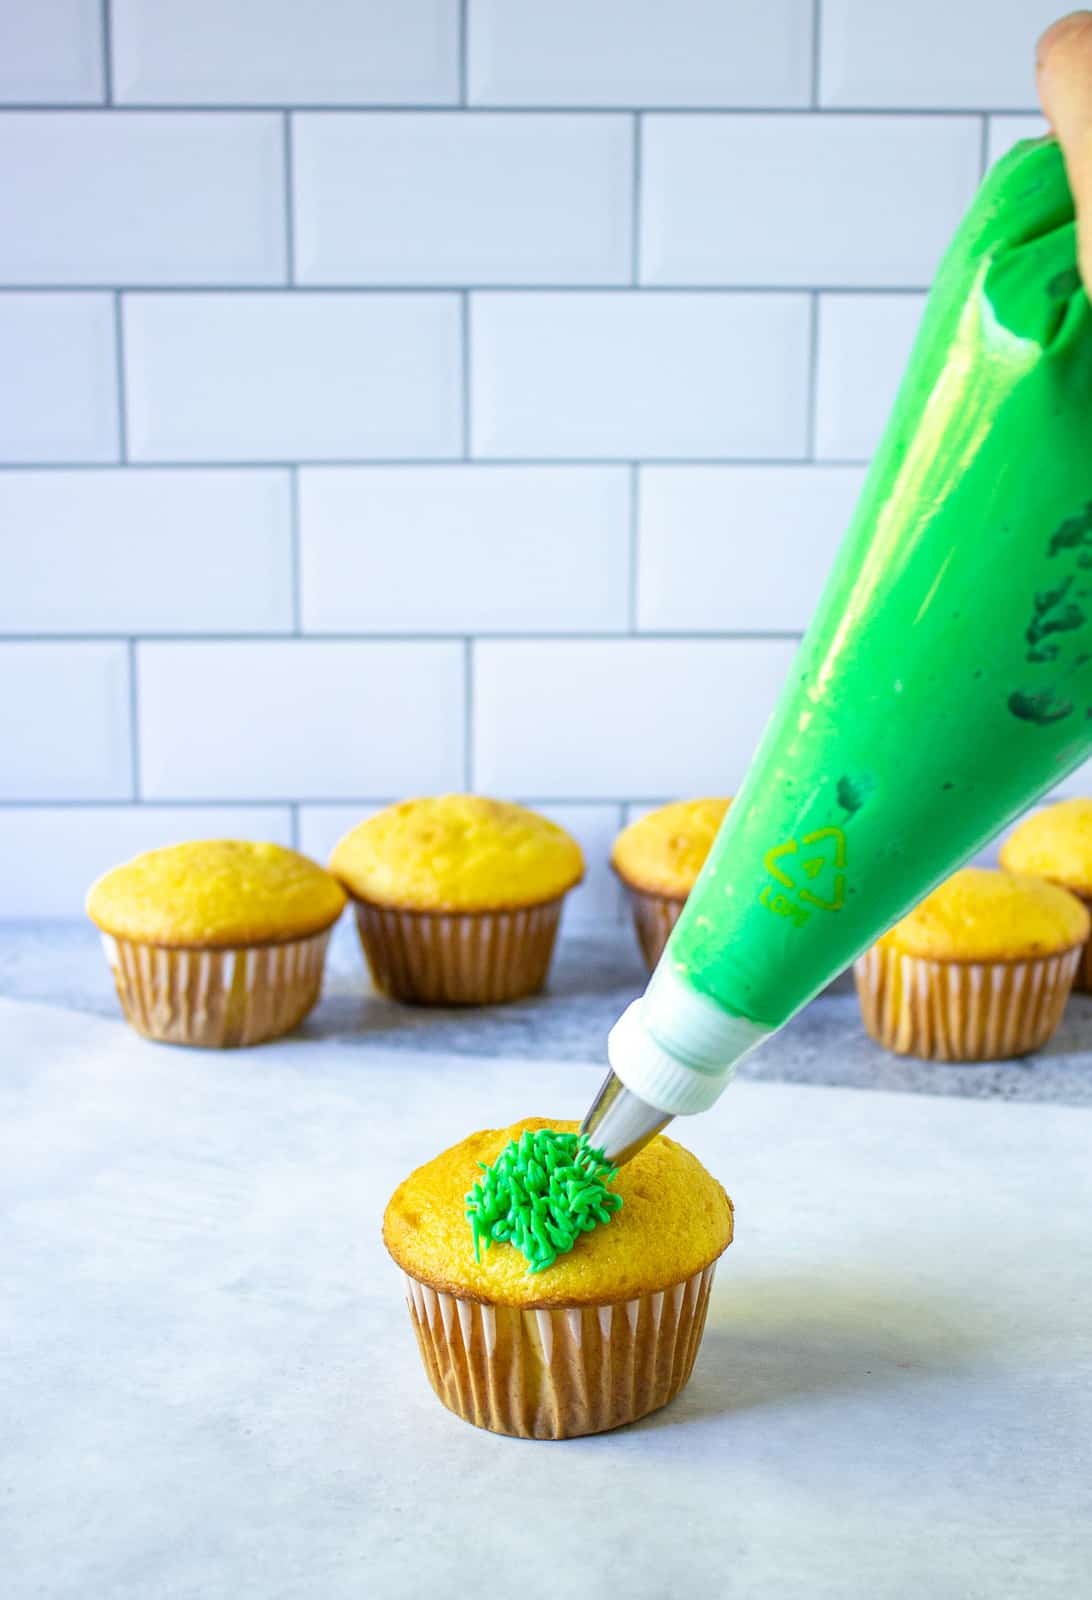 Adding green frosting to a cupcake.